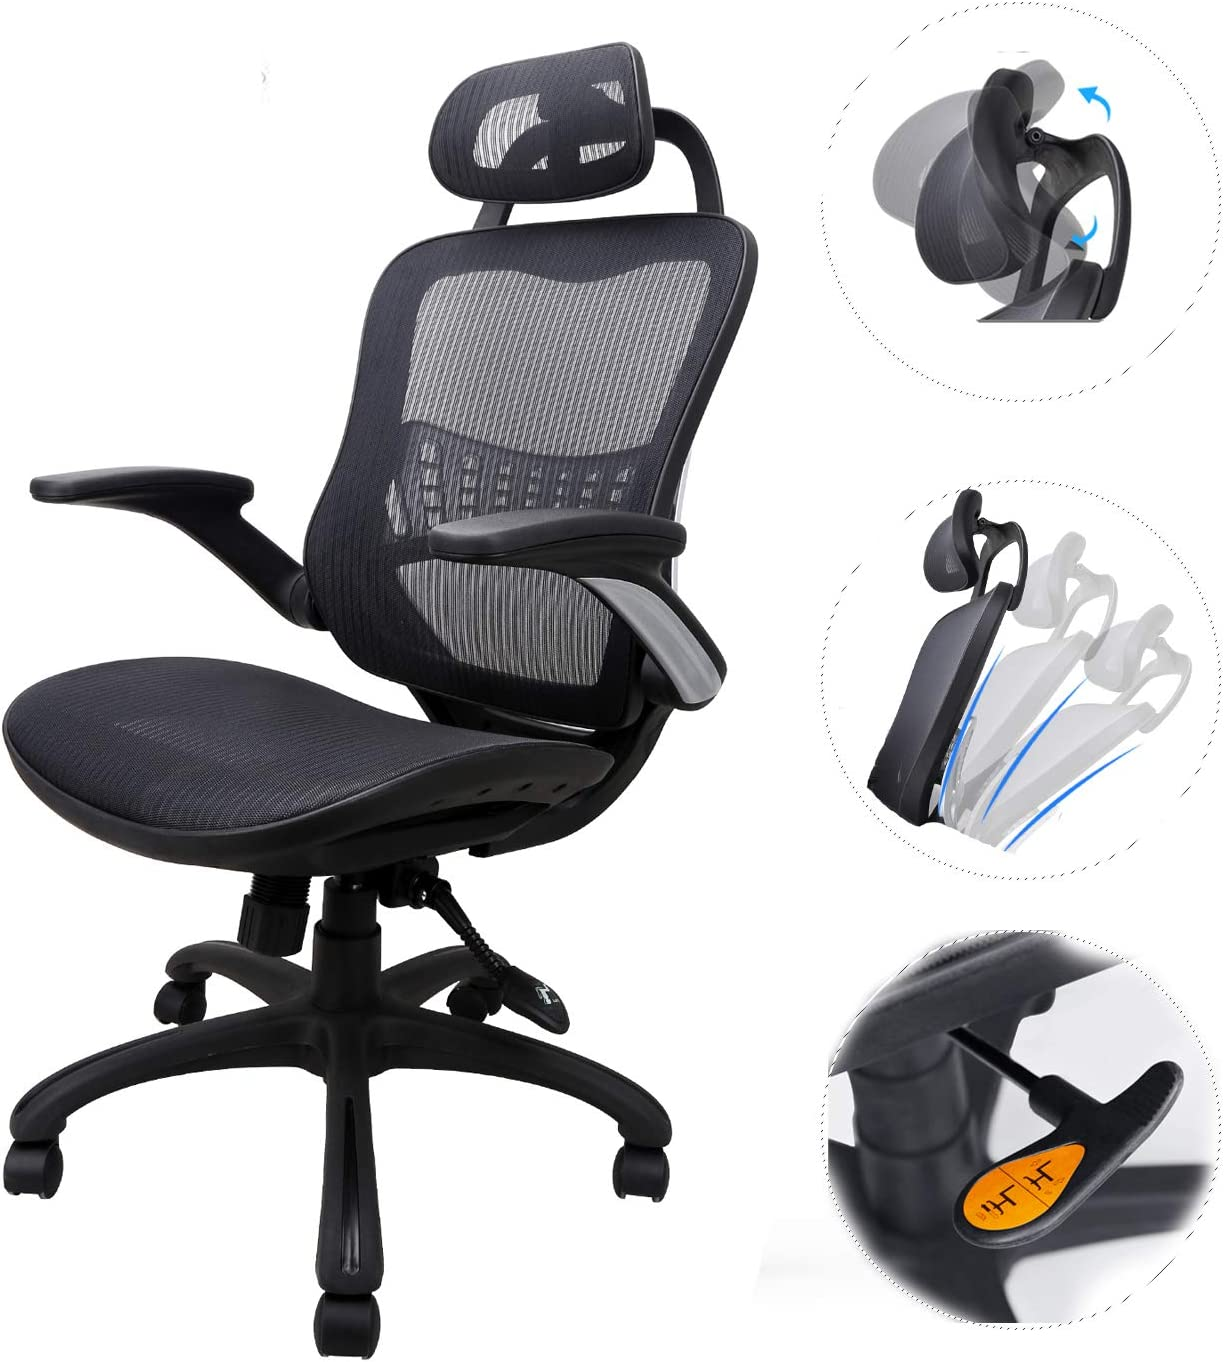 Ergonomic Chair with Headrest and Lumbar Support High Back Adjustable Mesh  Chair Executive, Drafting, Gaming Computer or Office Chair (Black) (39.39 x